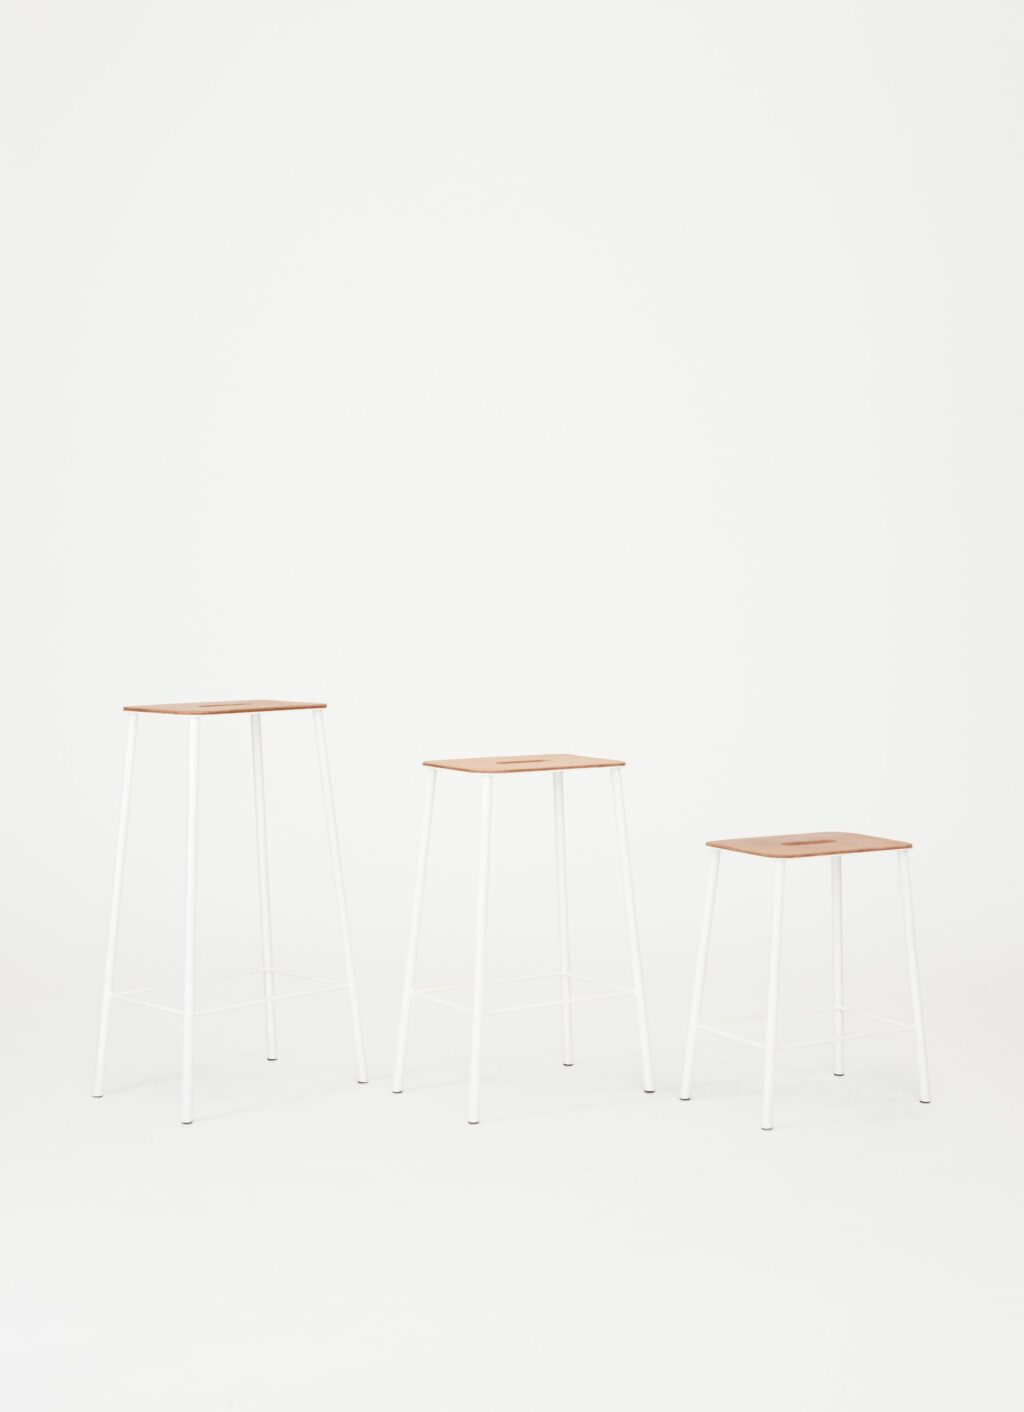 Adam Stool – White - available in 3 sizes - Oak or Natural Leather seat